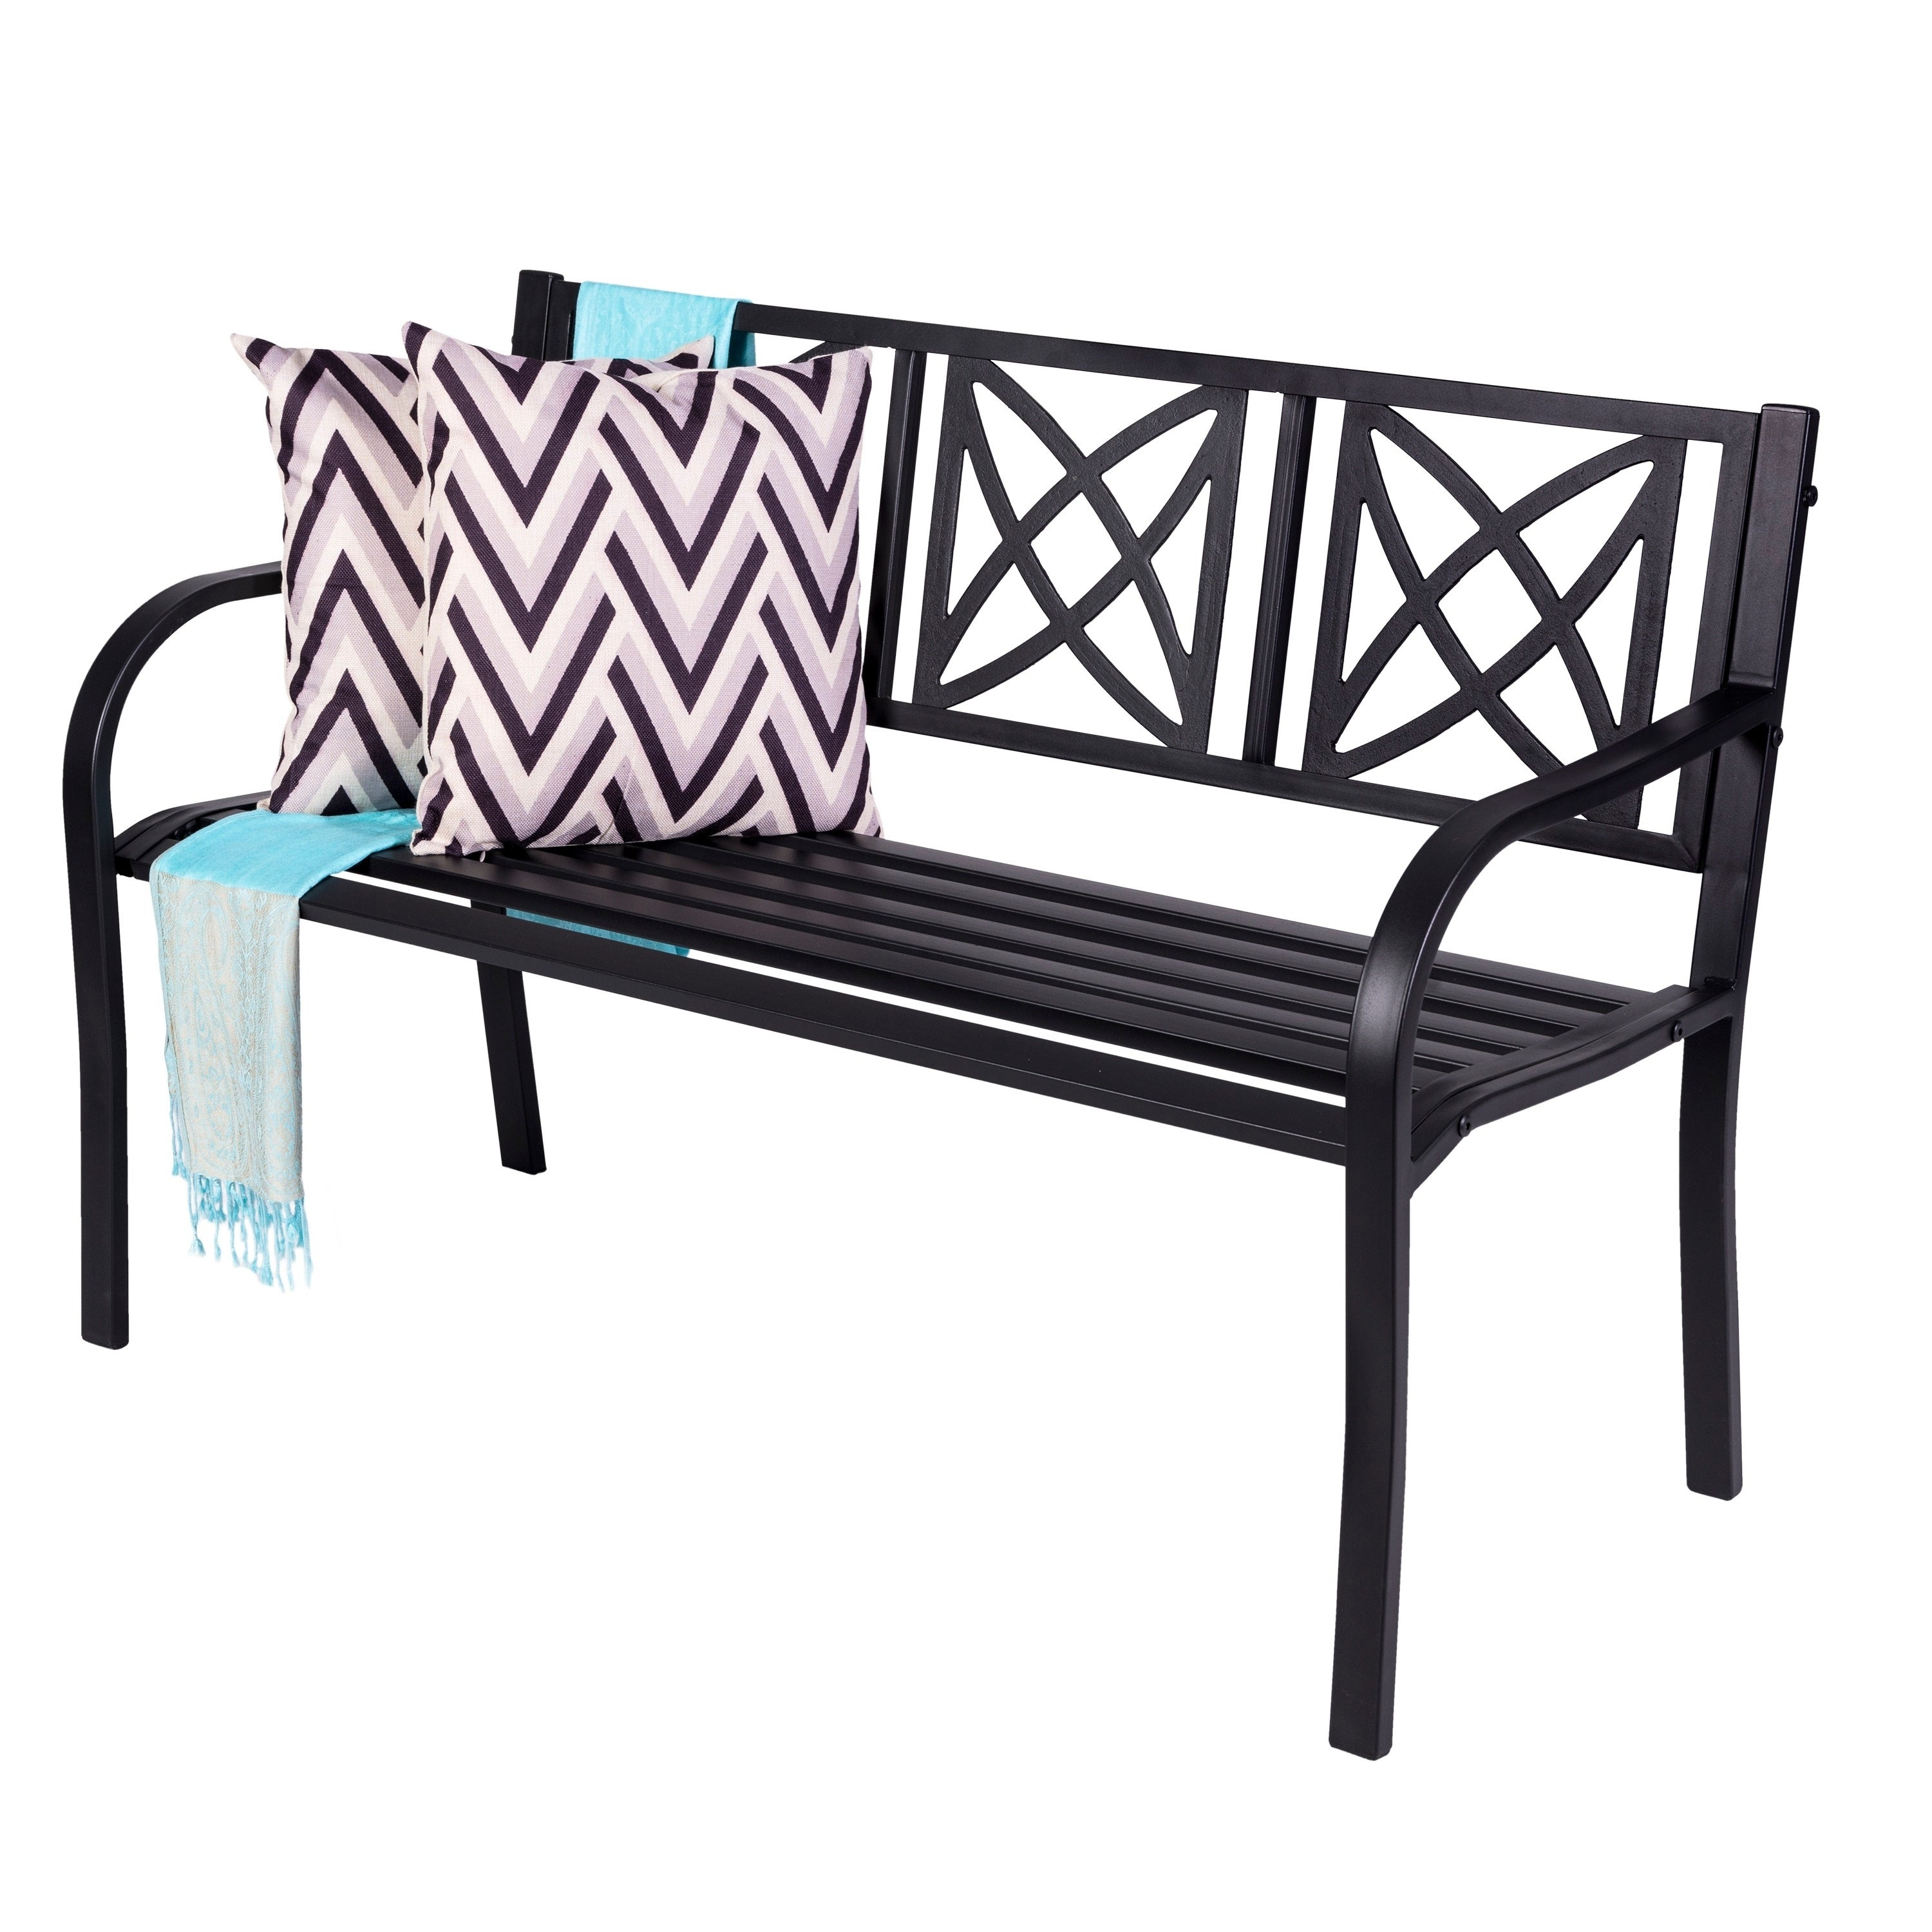 Shop Paracelsus 4 Foot Metal Garden Bench Free Shipping On Orders